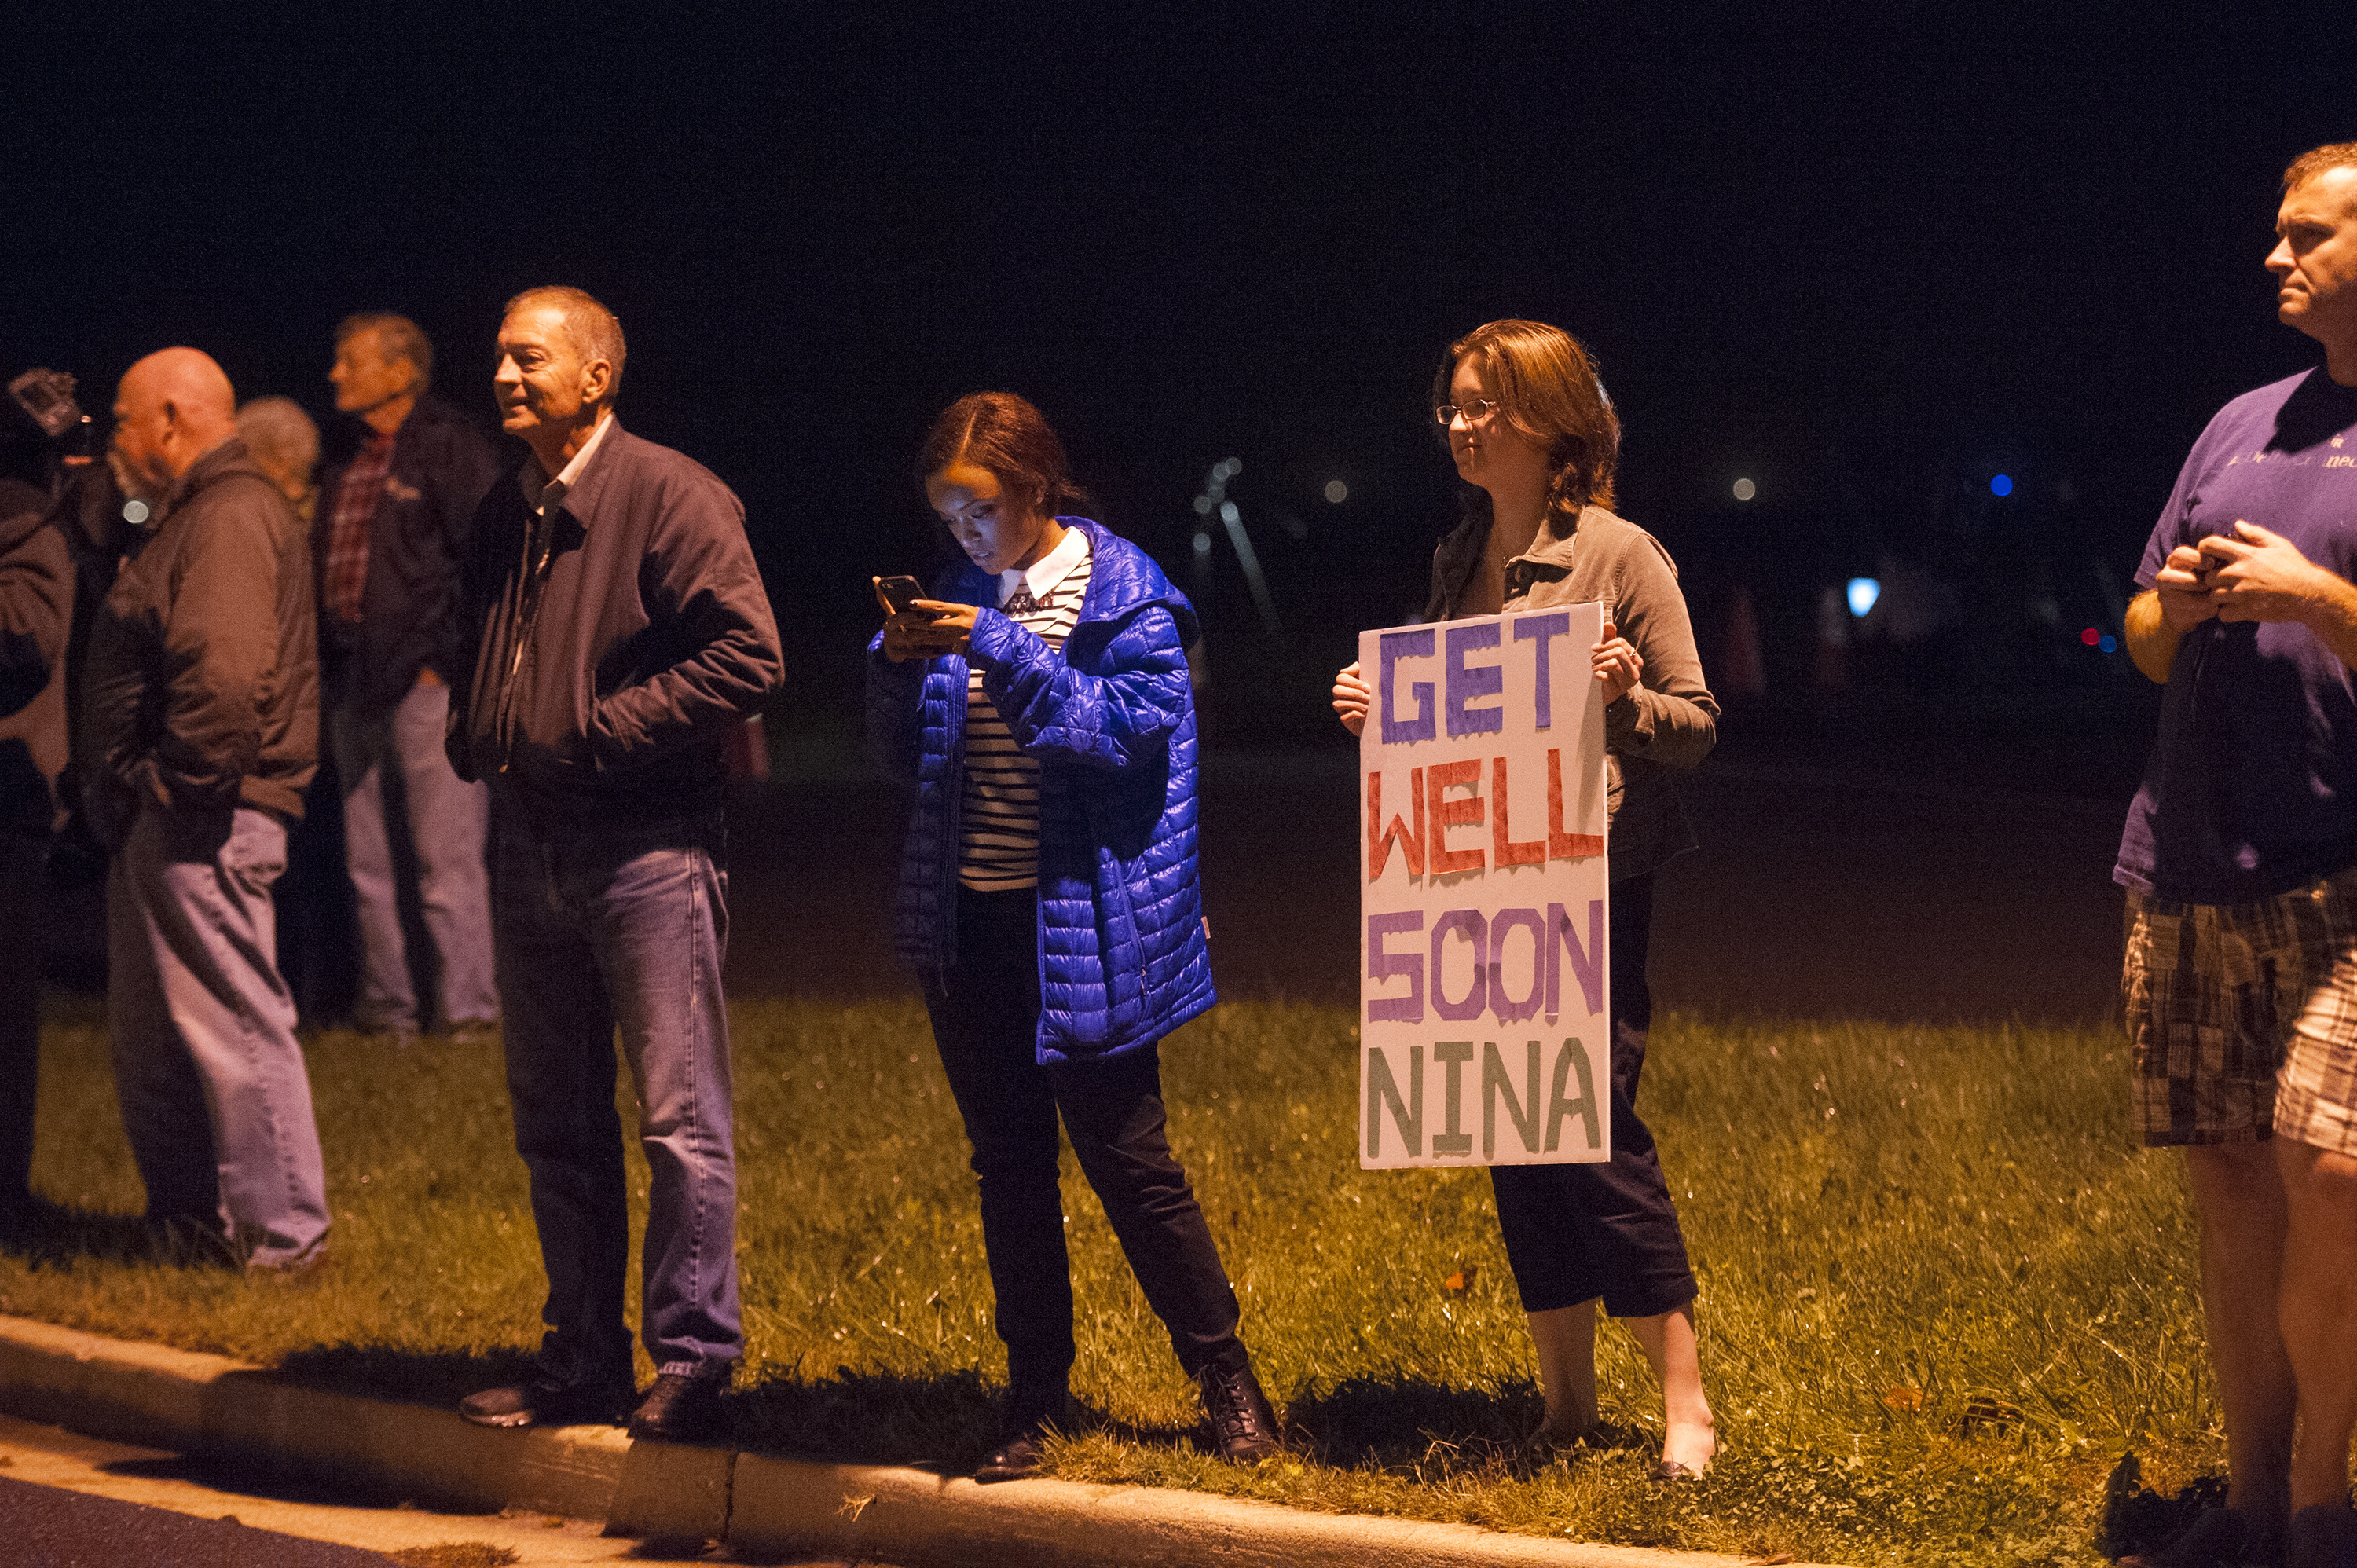 Ashley King of Walkersville came out to send a positive message to Nina Pham, a nurse who treated Thomas Duncan, the Liberian man, who died of Ebola,  who was flown into Frederick Airport and transferred to NIH to treat her now that she has Ebola October 16, 2014 in Frederick, Maryland.